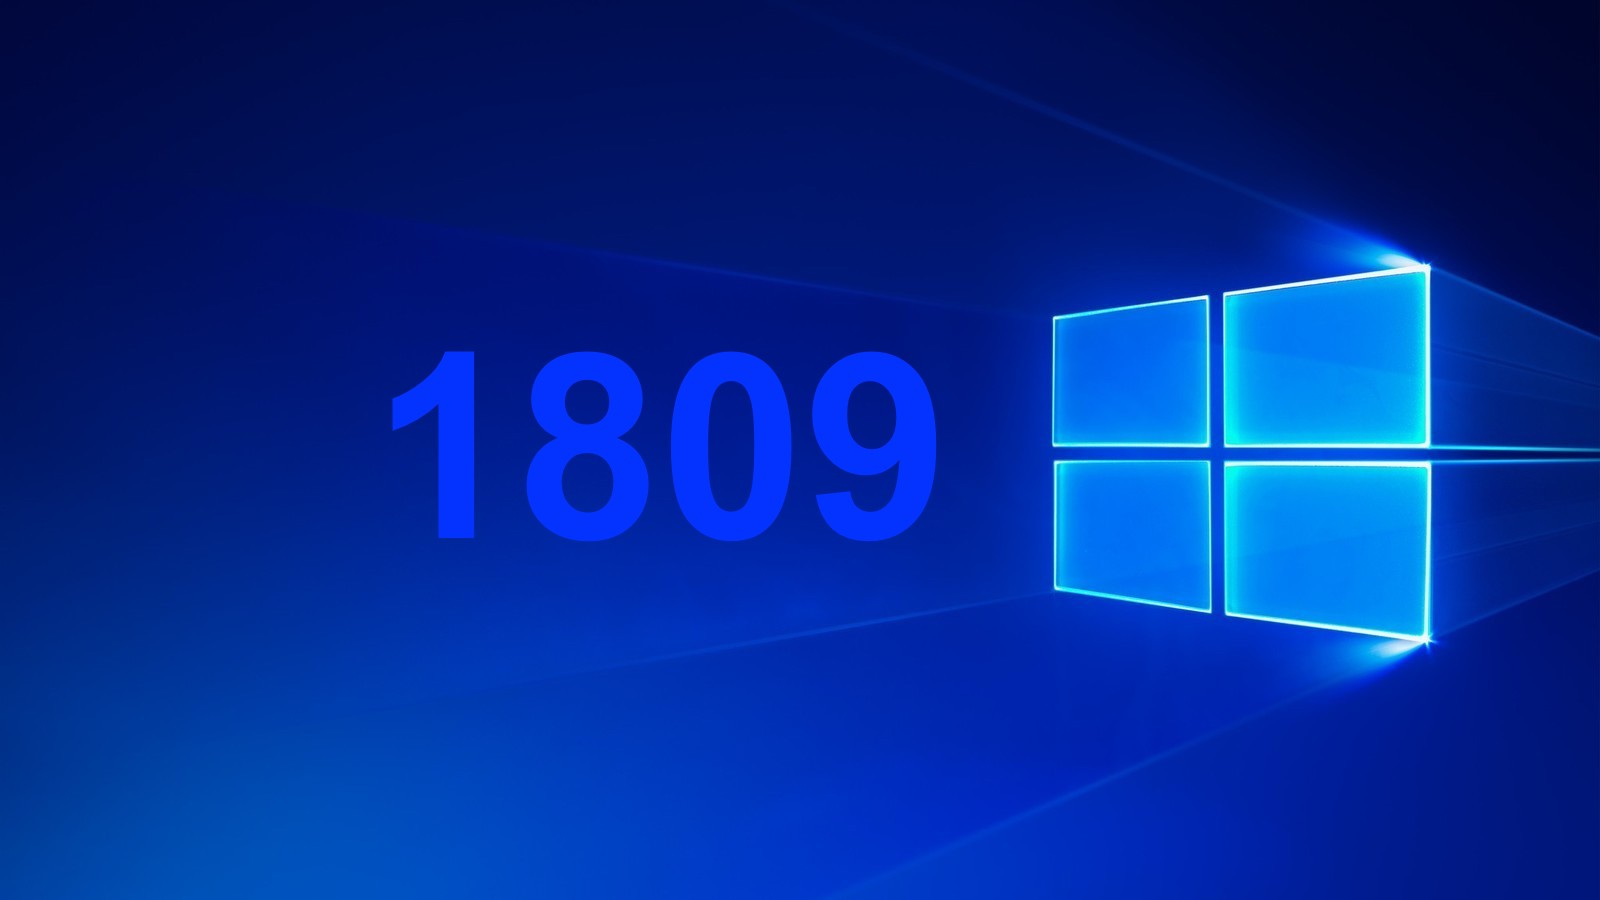 windows 10 1809 bugs download Windows 10 October 2018 Update windows 10 1809